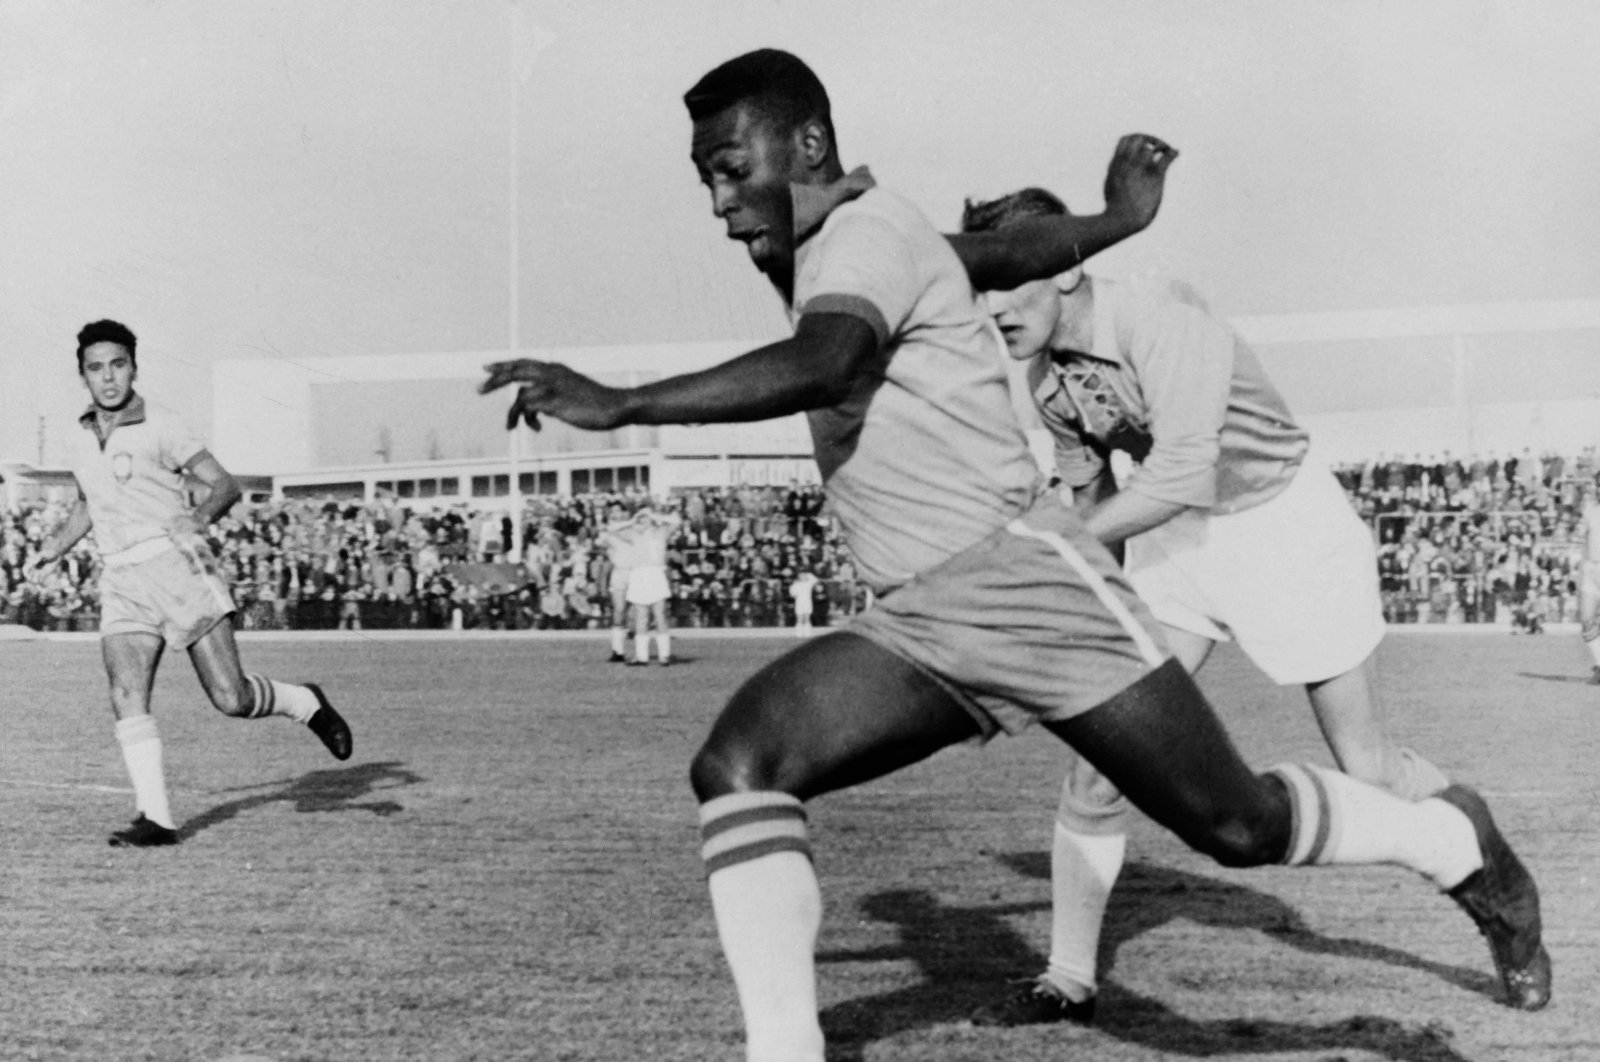 In this undated photo, Brazilian football legend Pele dribbles past a defender during a friendly match between Malmo and Brazil, in Malmo, Sweden. (AFP Photo)